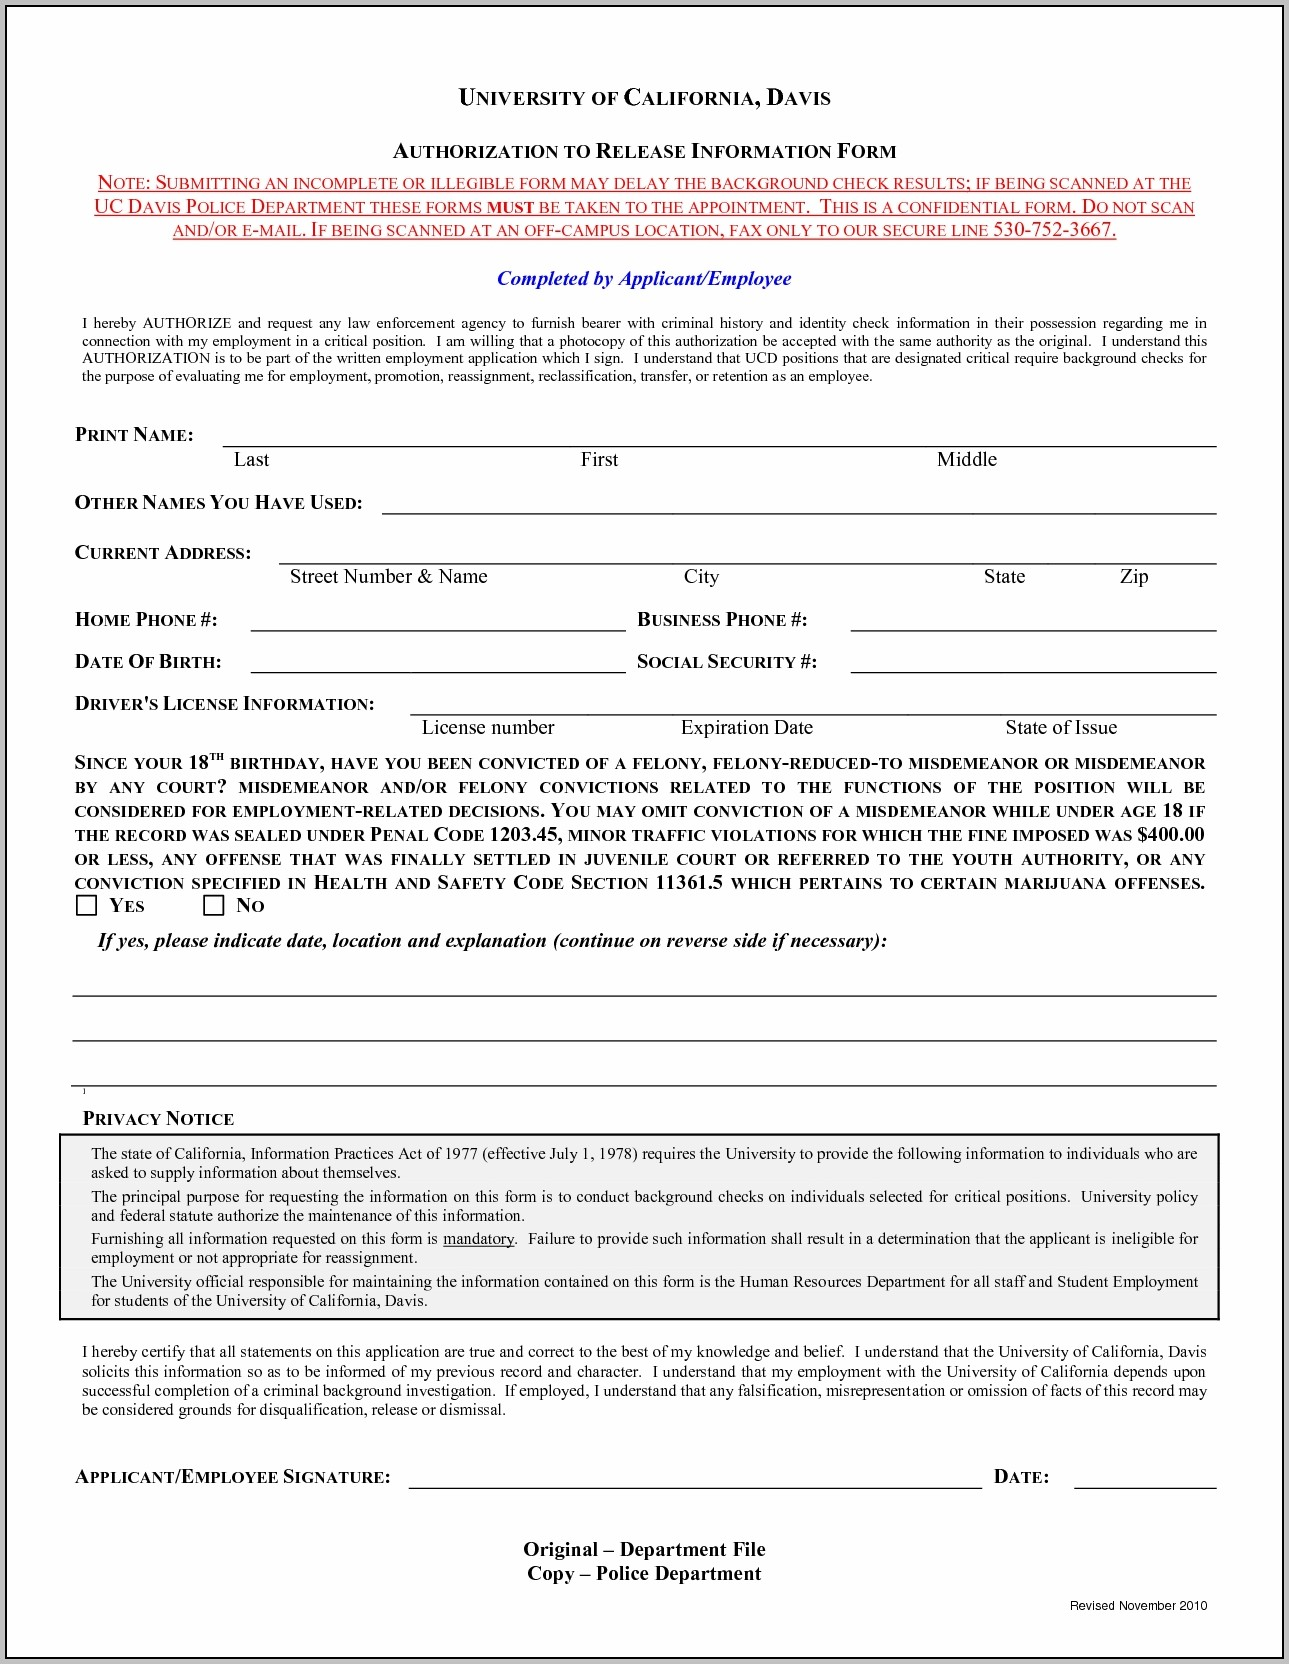 Background Check Authorization Form Template | Template Design Throughout Background Check Authorization Form Template